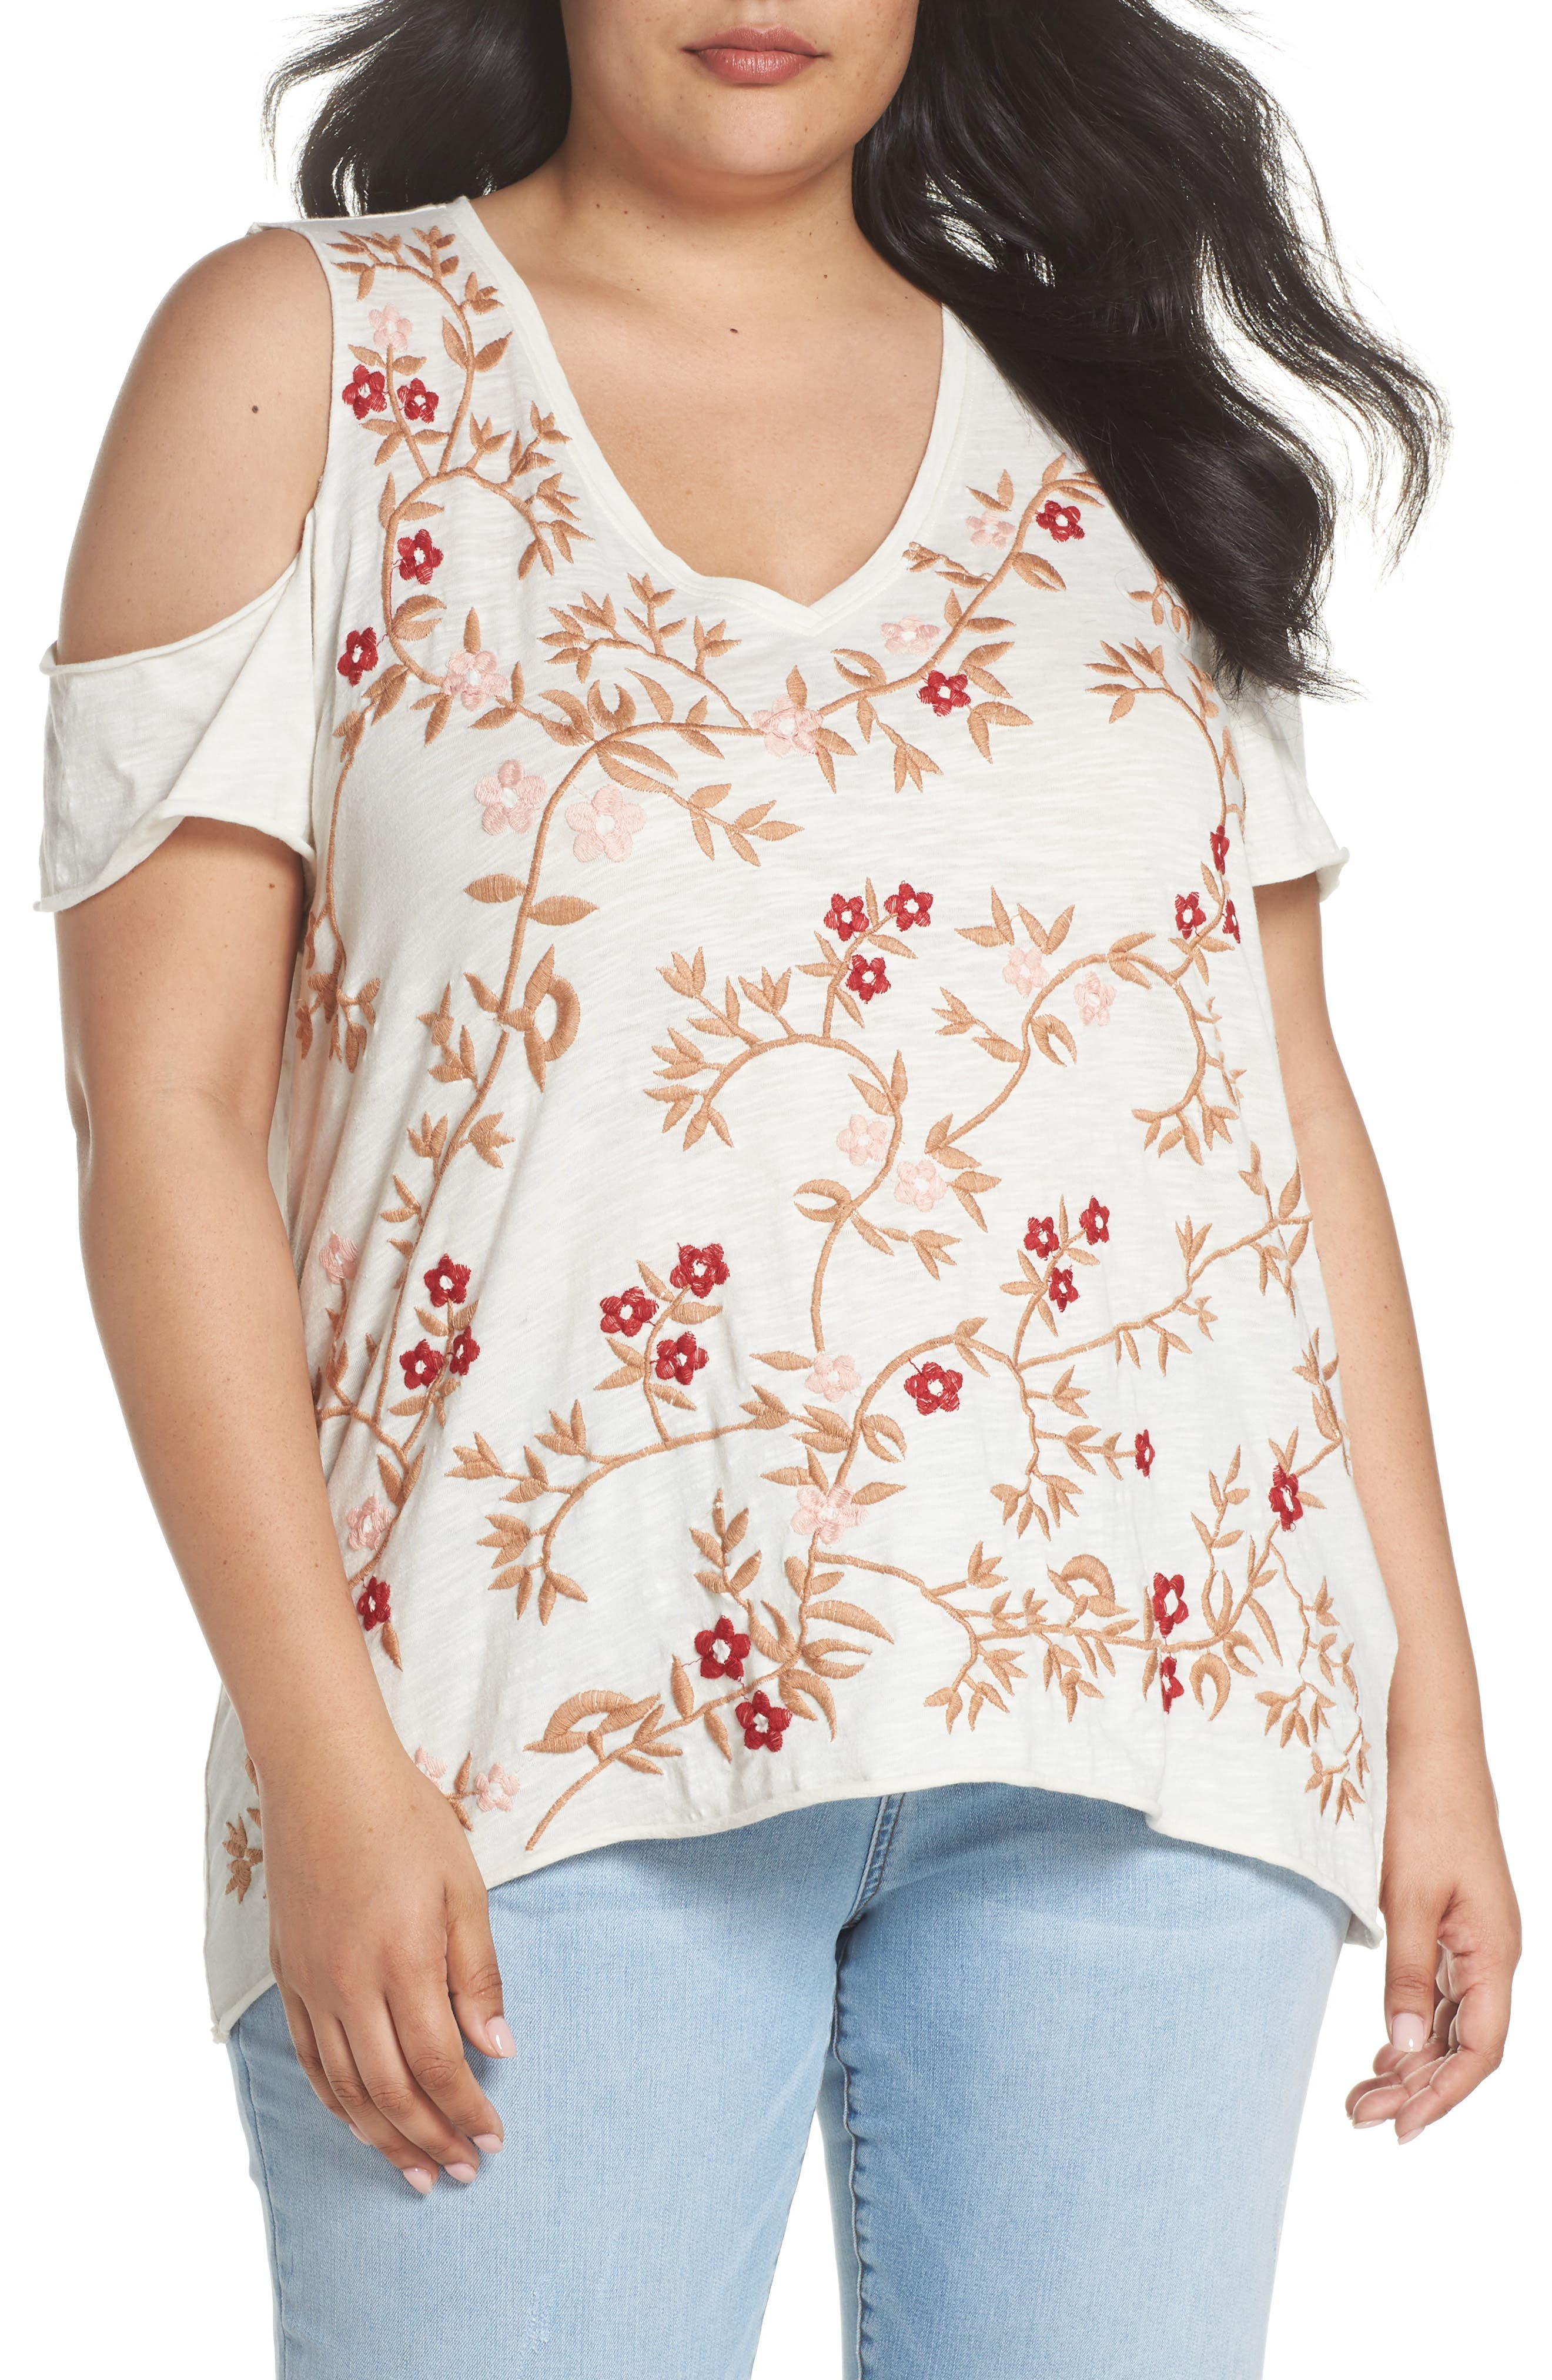 Alternate Image 1 Selected - Lucky Brand Floral Embroidered Tee (Plus Size)